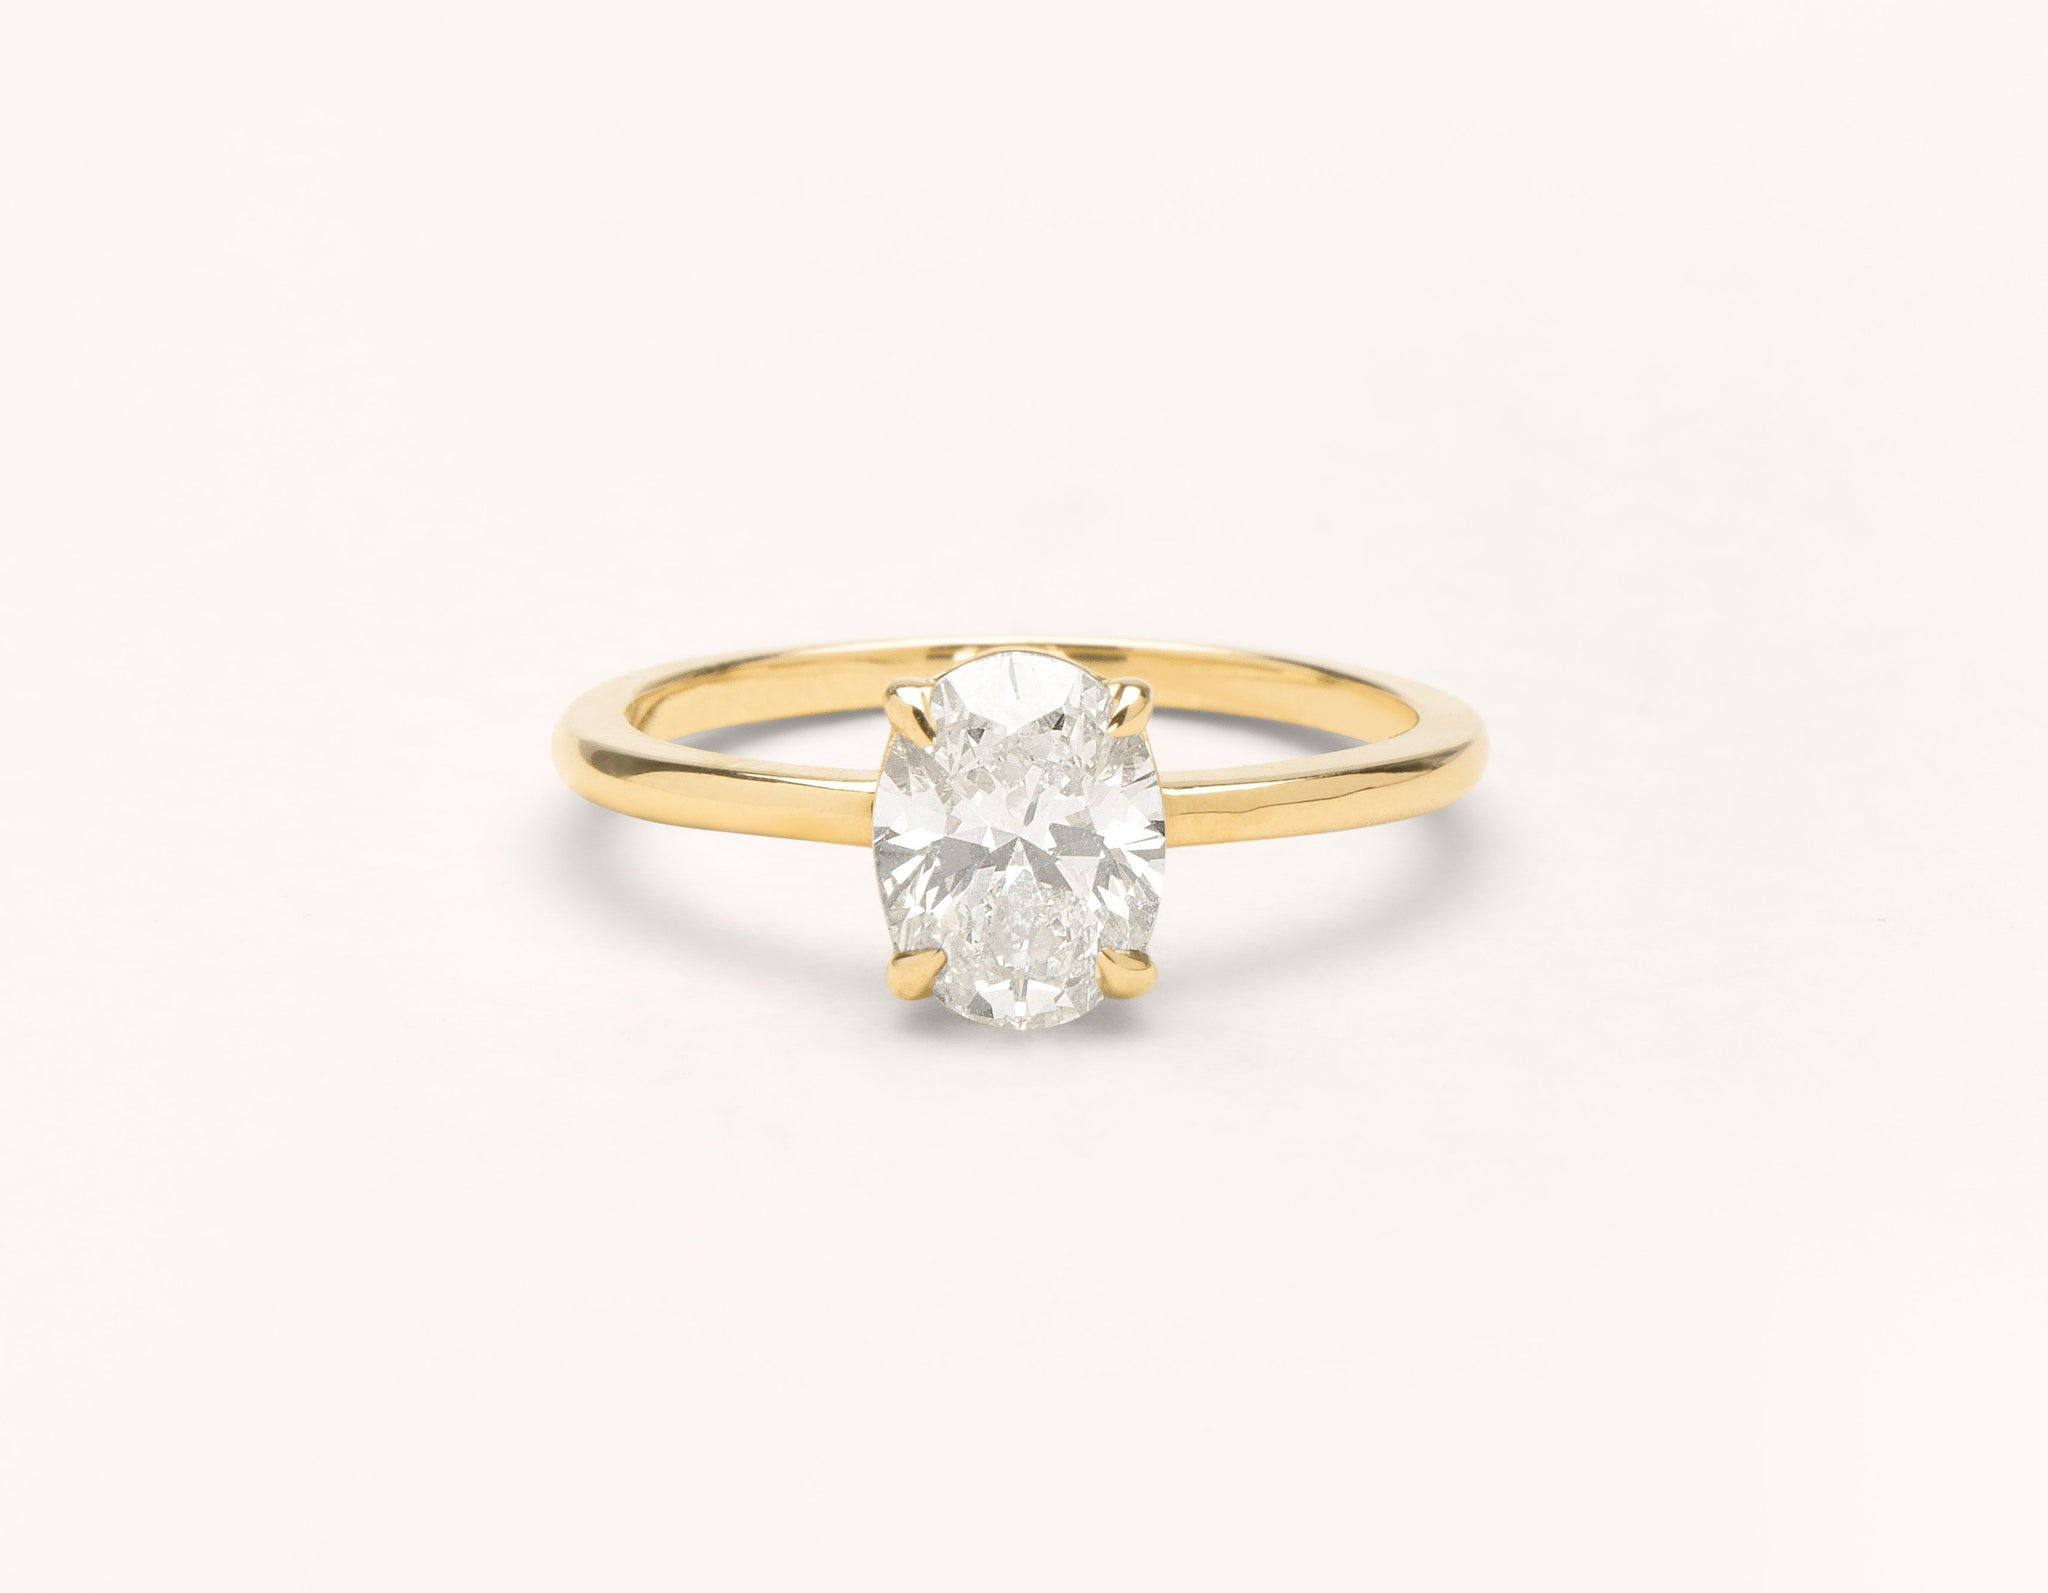 Minimalist 18k solid yellow gold The Oval engagement ring 1 ct diamond Vrai and Oro